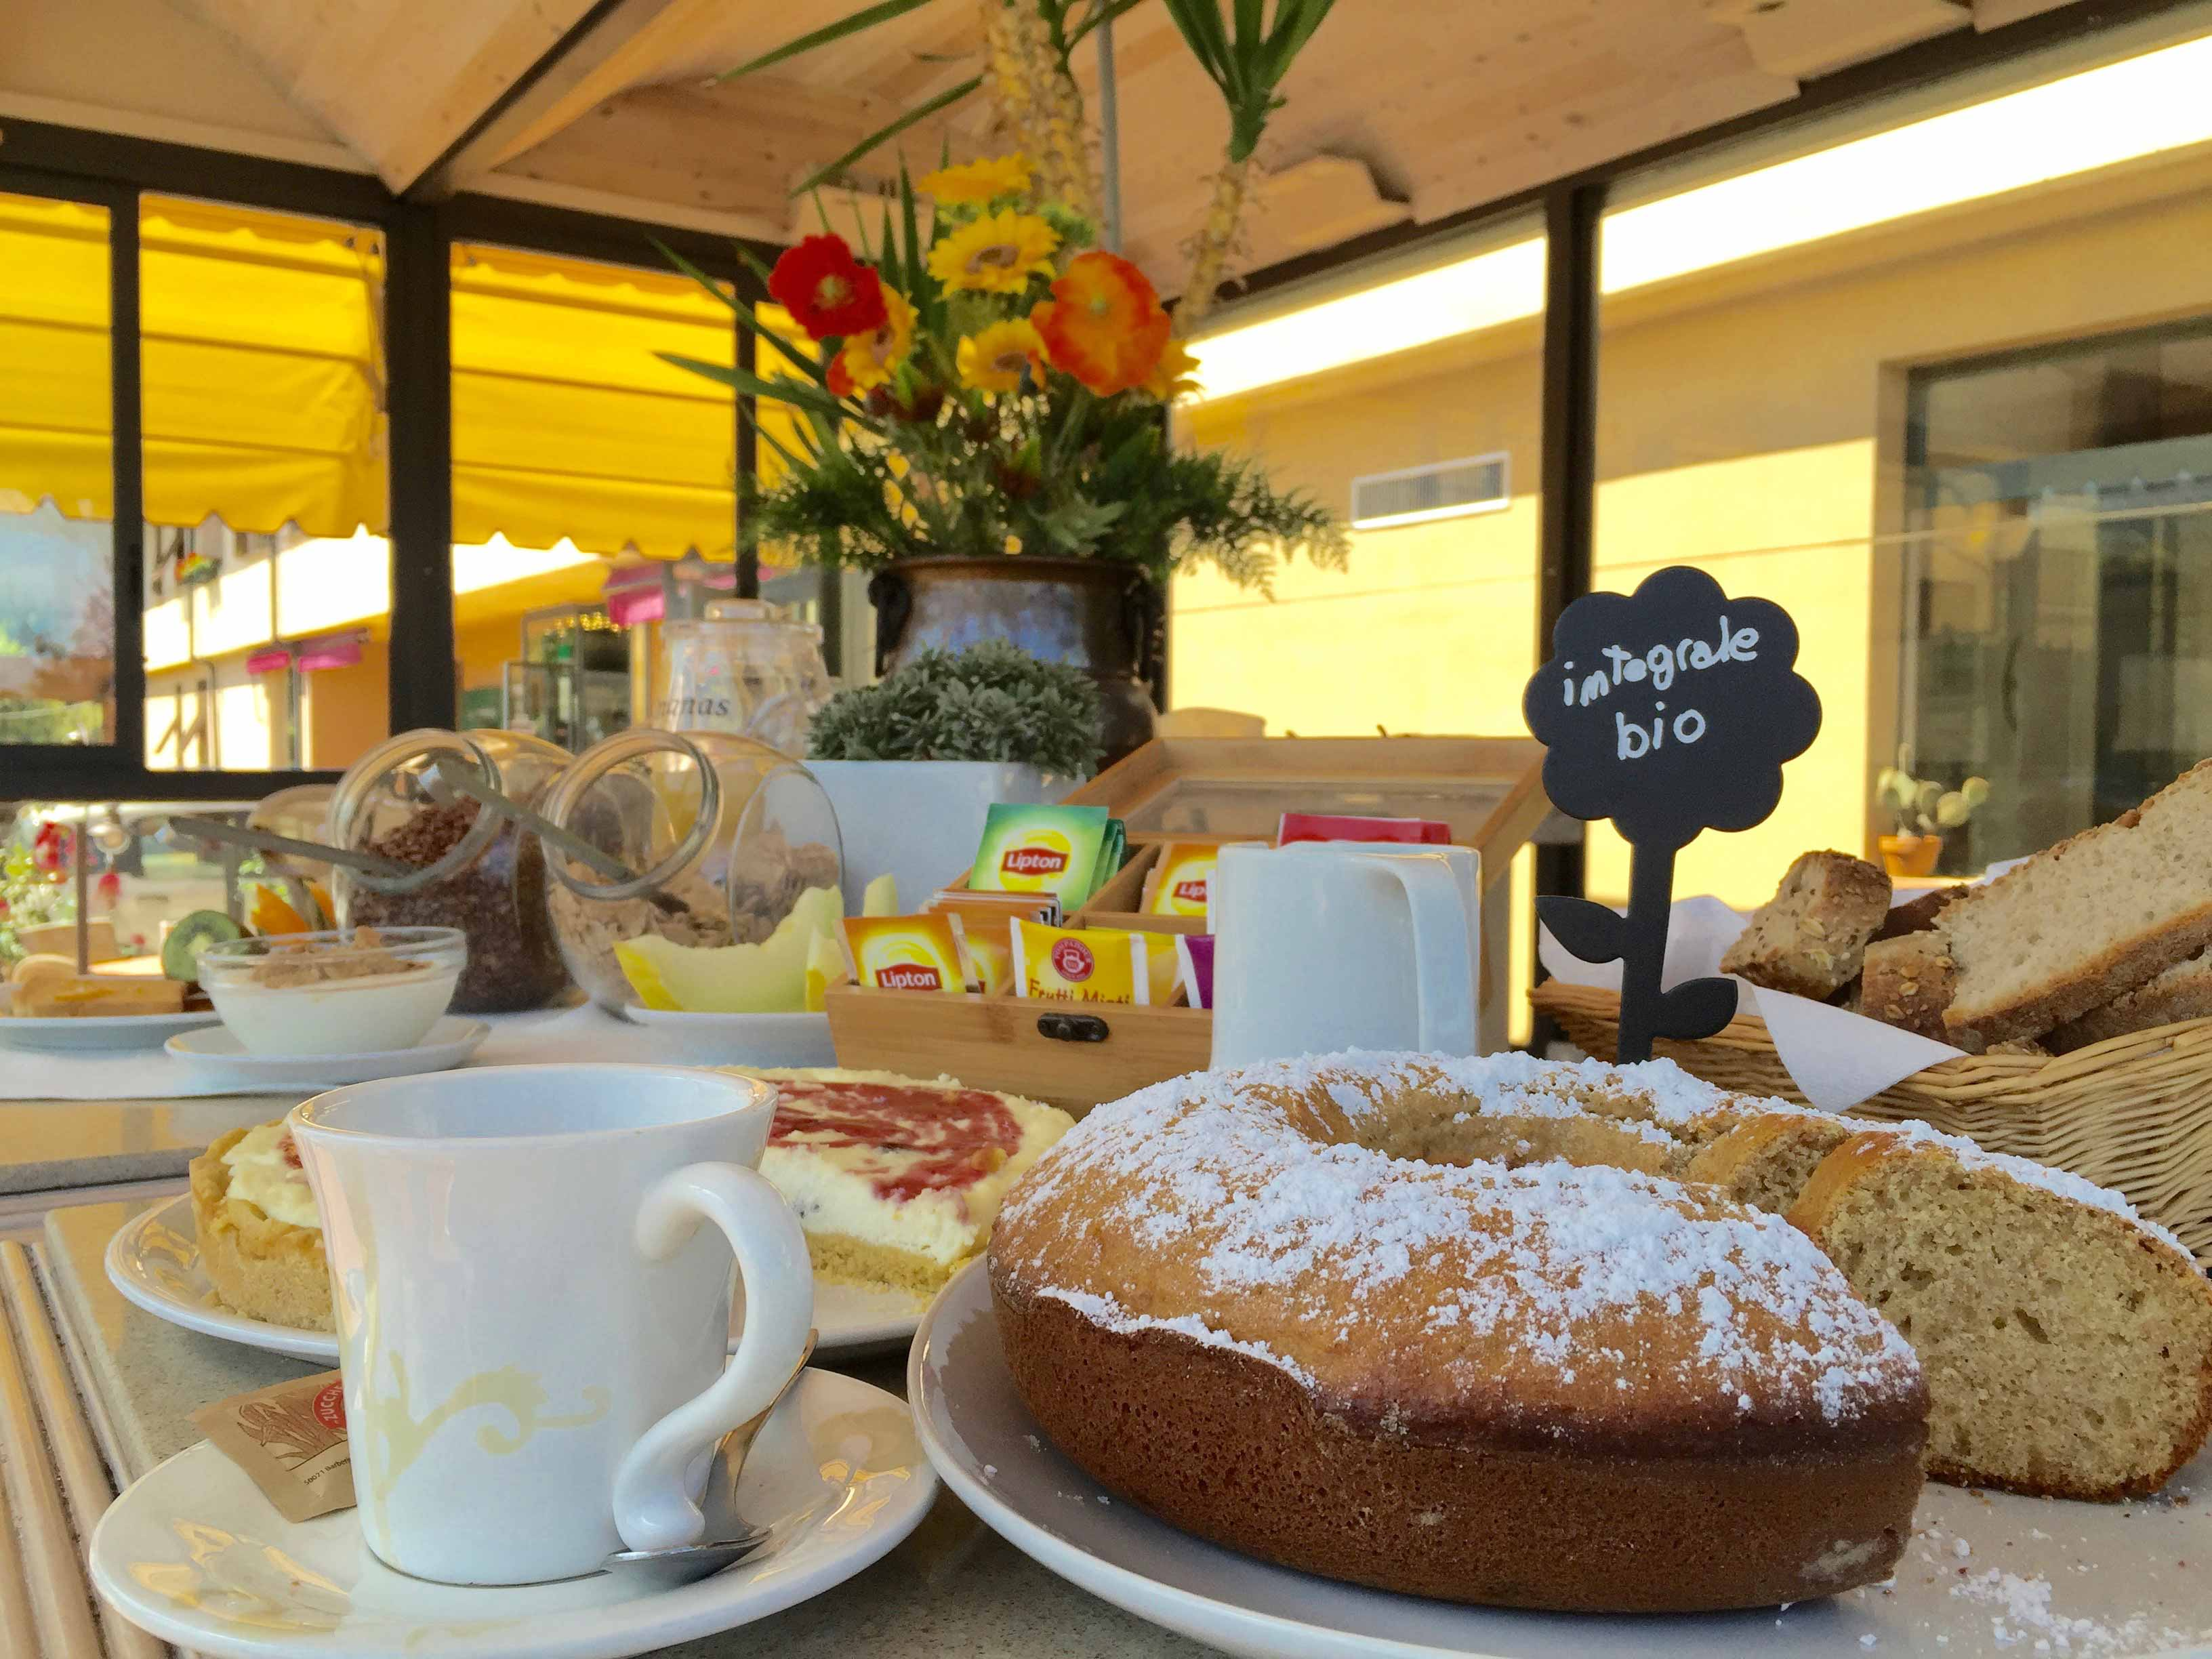 Hotel Antica Badia Volterra in Tuscany - the breakfast with whole food, light and bio